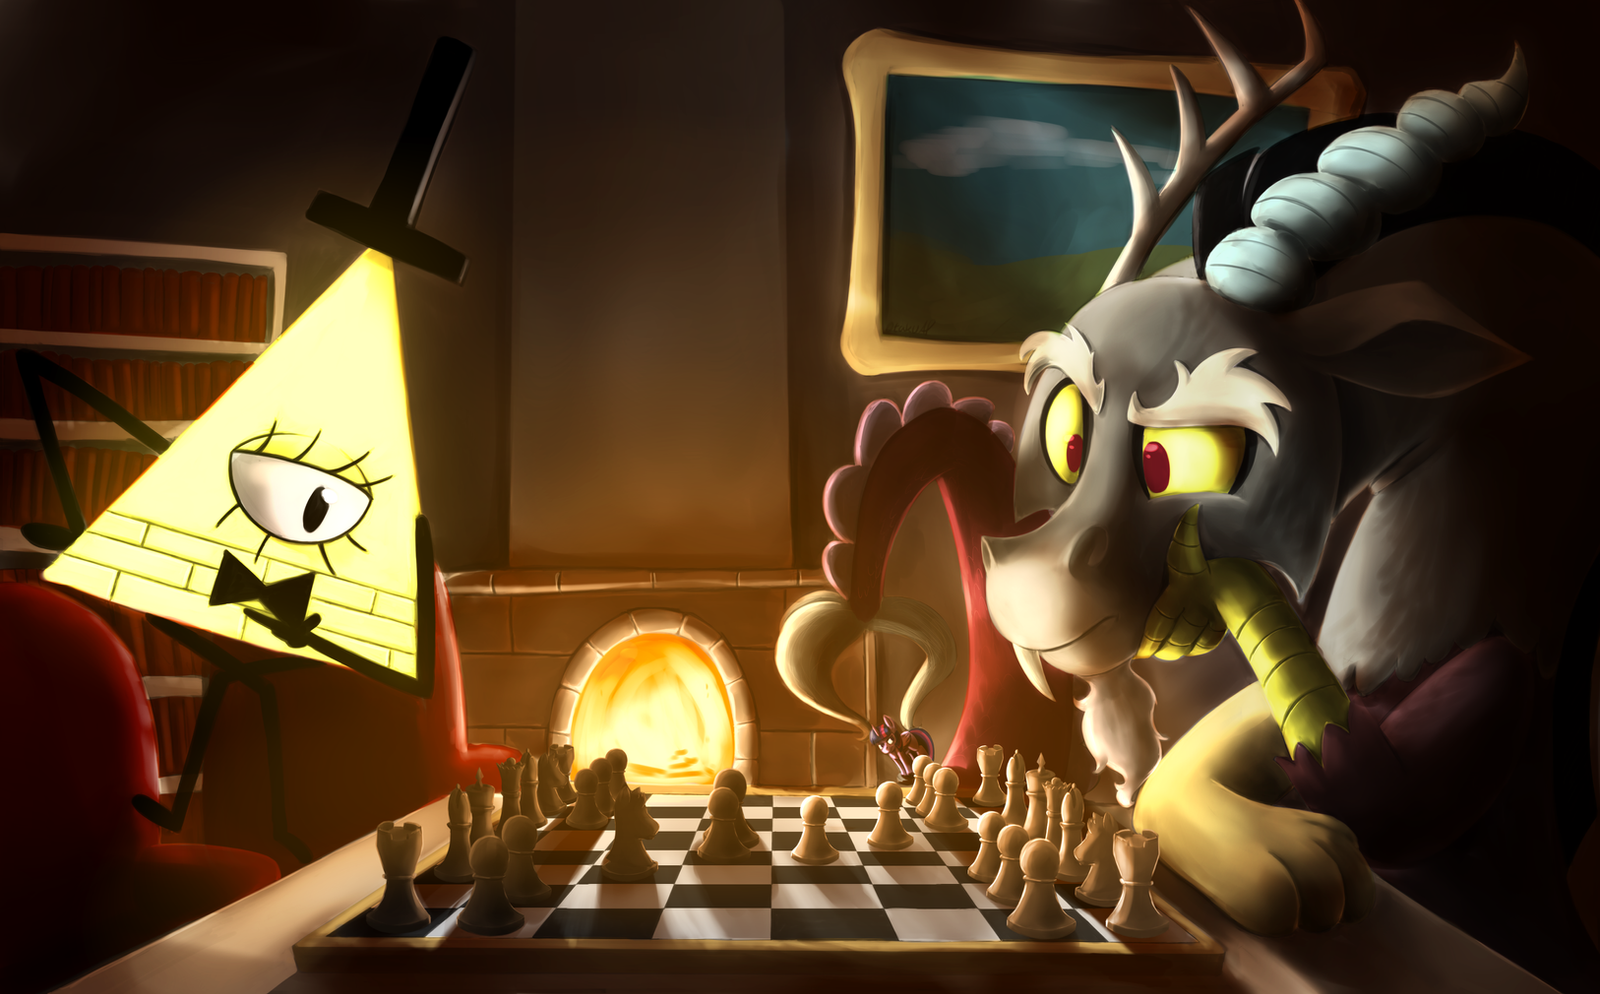 Chess by otakuap